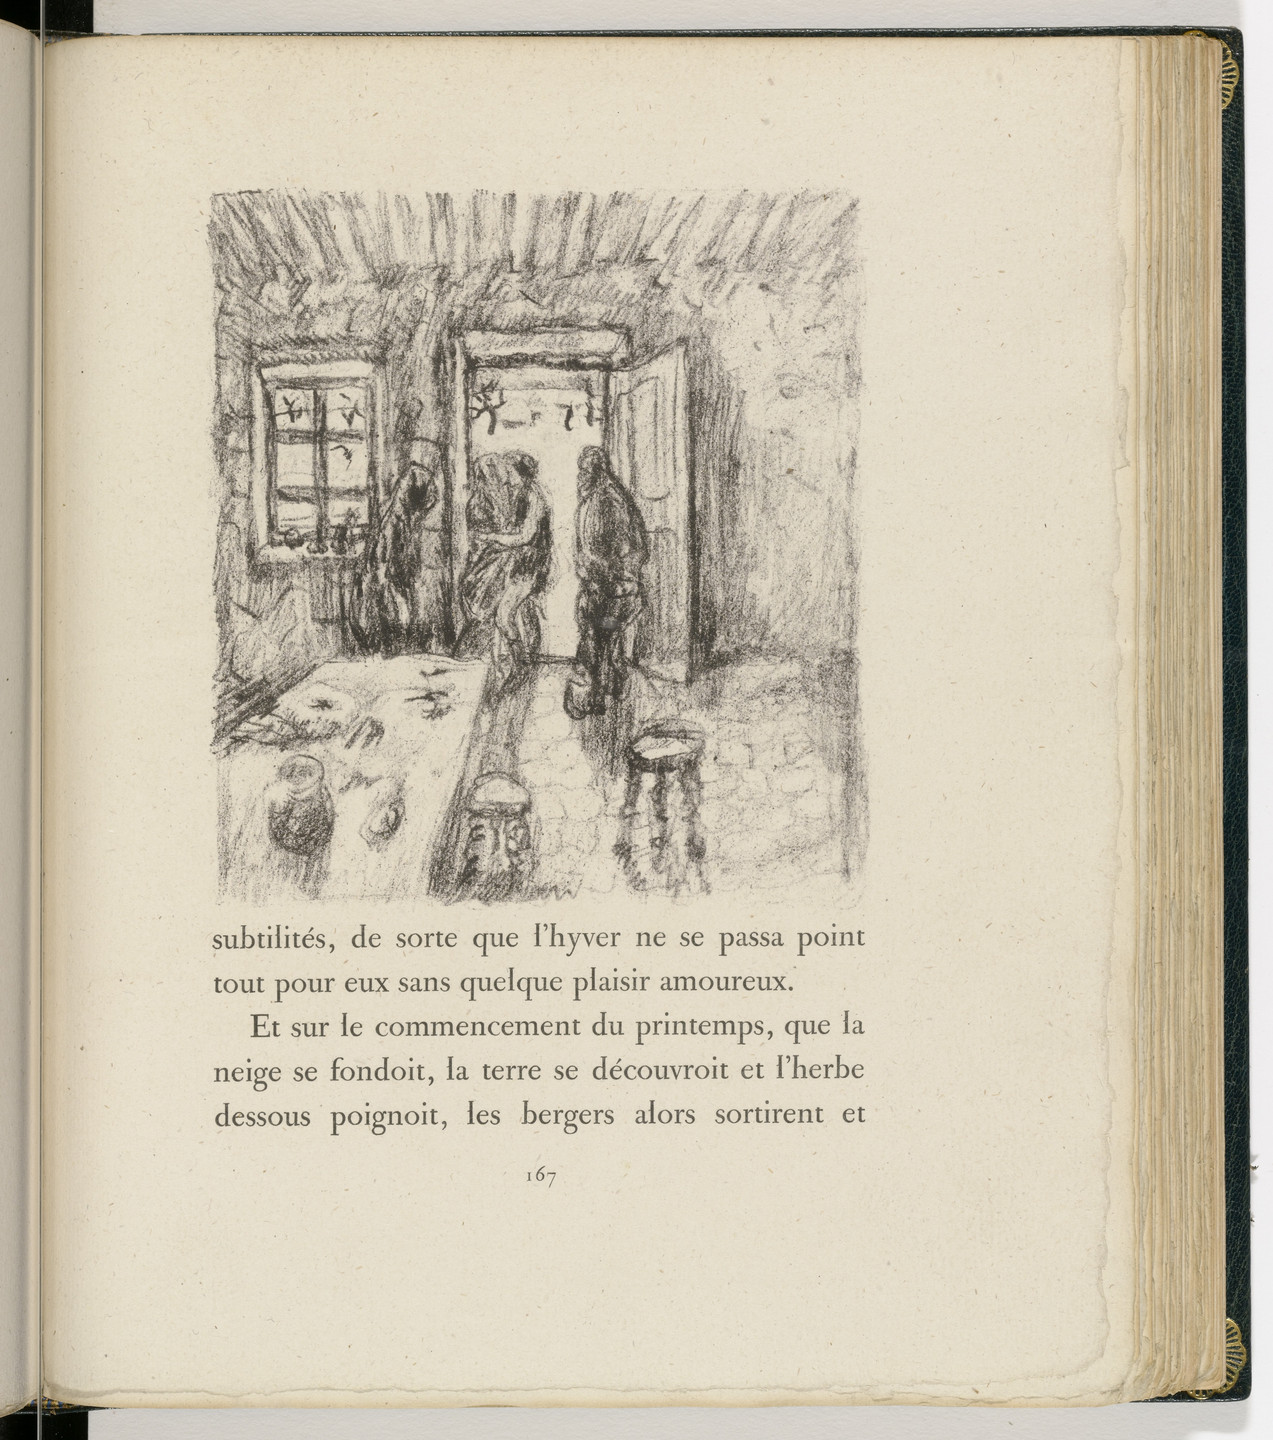 Pierre Bonnard. In-text plate (page 167) from Daphnis et Chloé. 1902